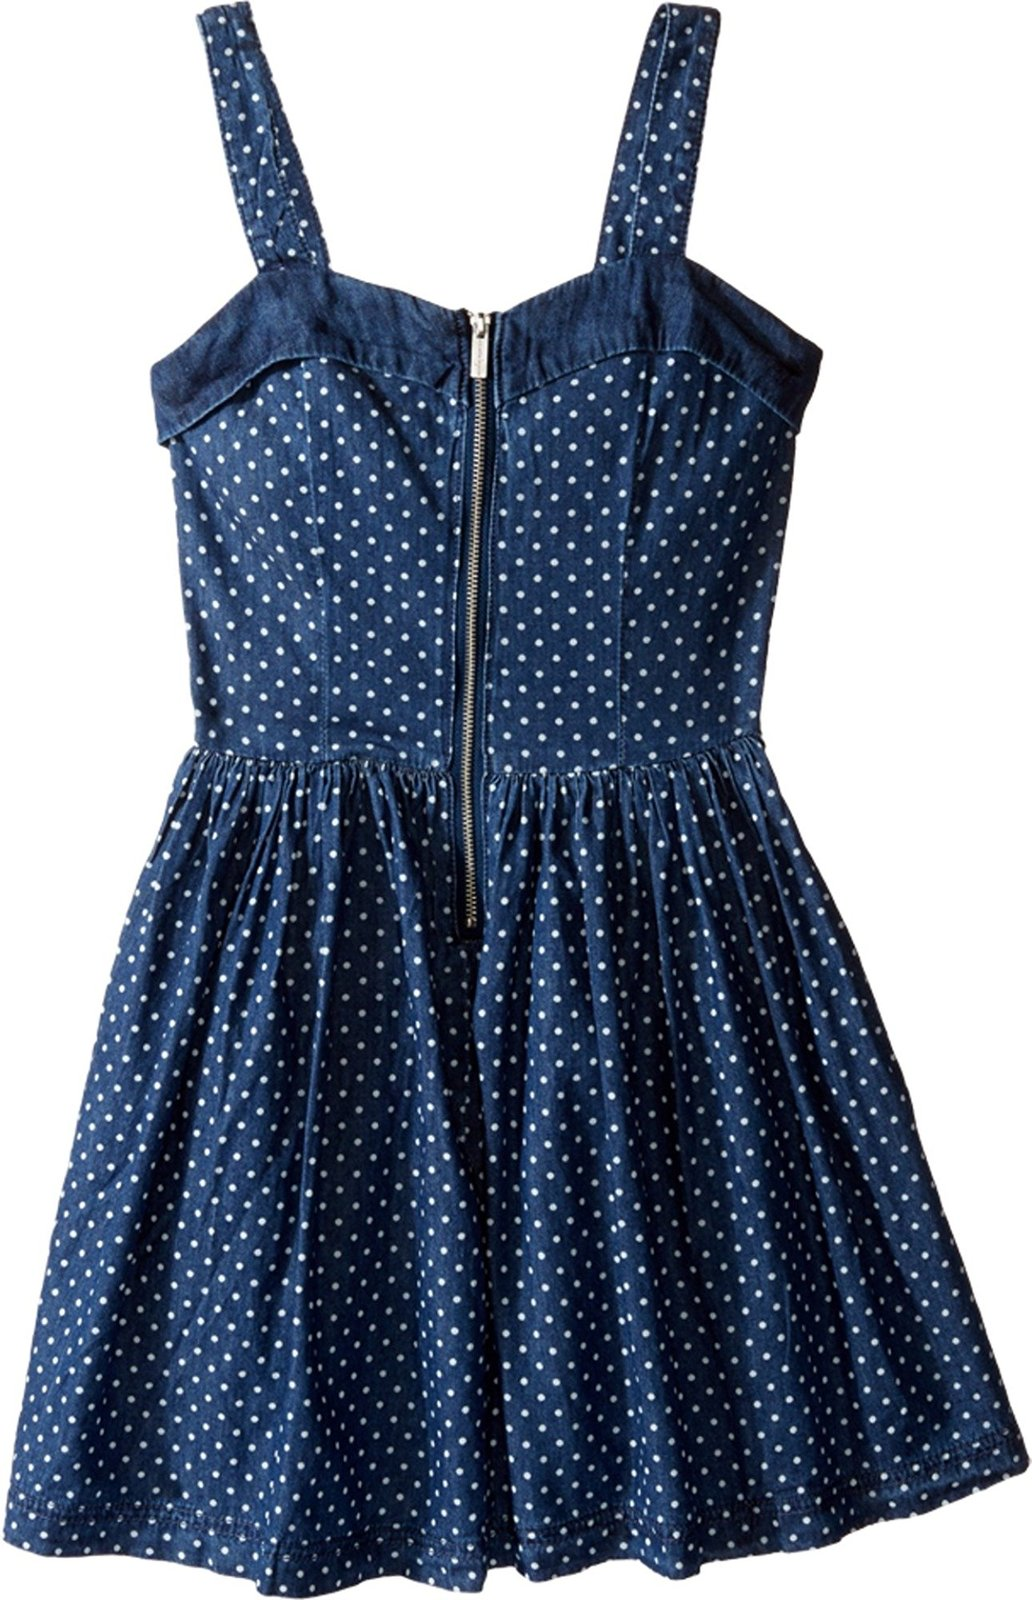 Nanette Lepore Tween Girls 7-16 Zip Front Polka Dot Denim Fit Flare Dress